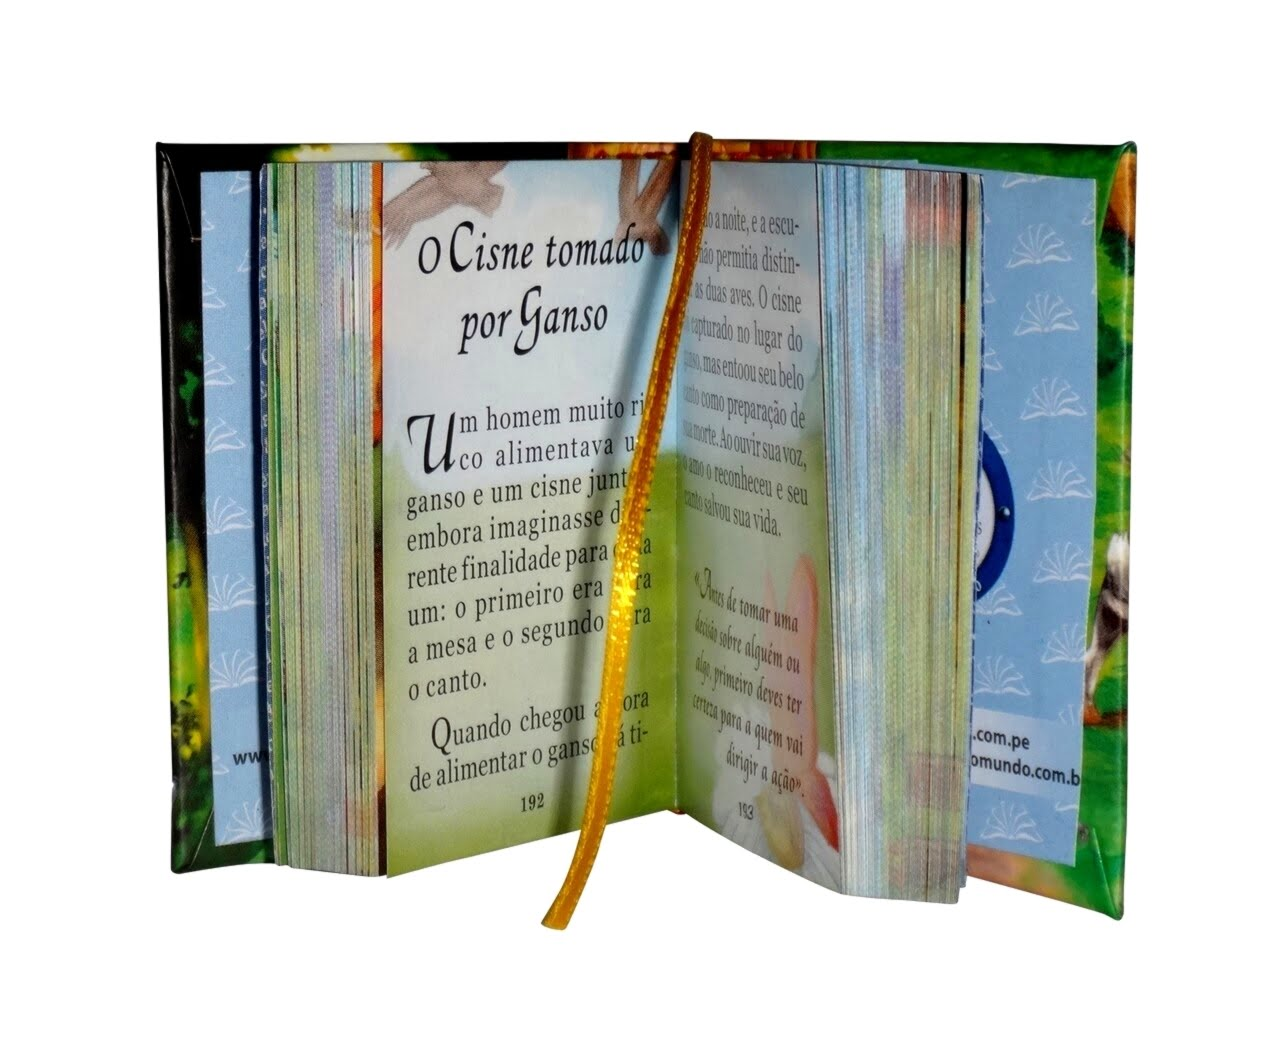 fabulas-portugues-1-miniature-book-libro